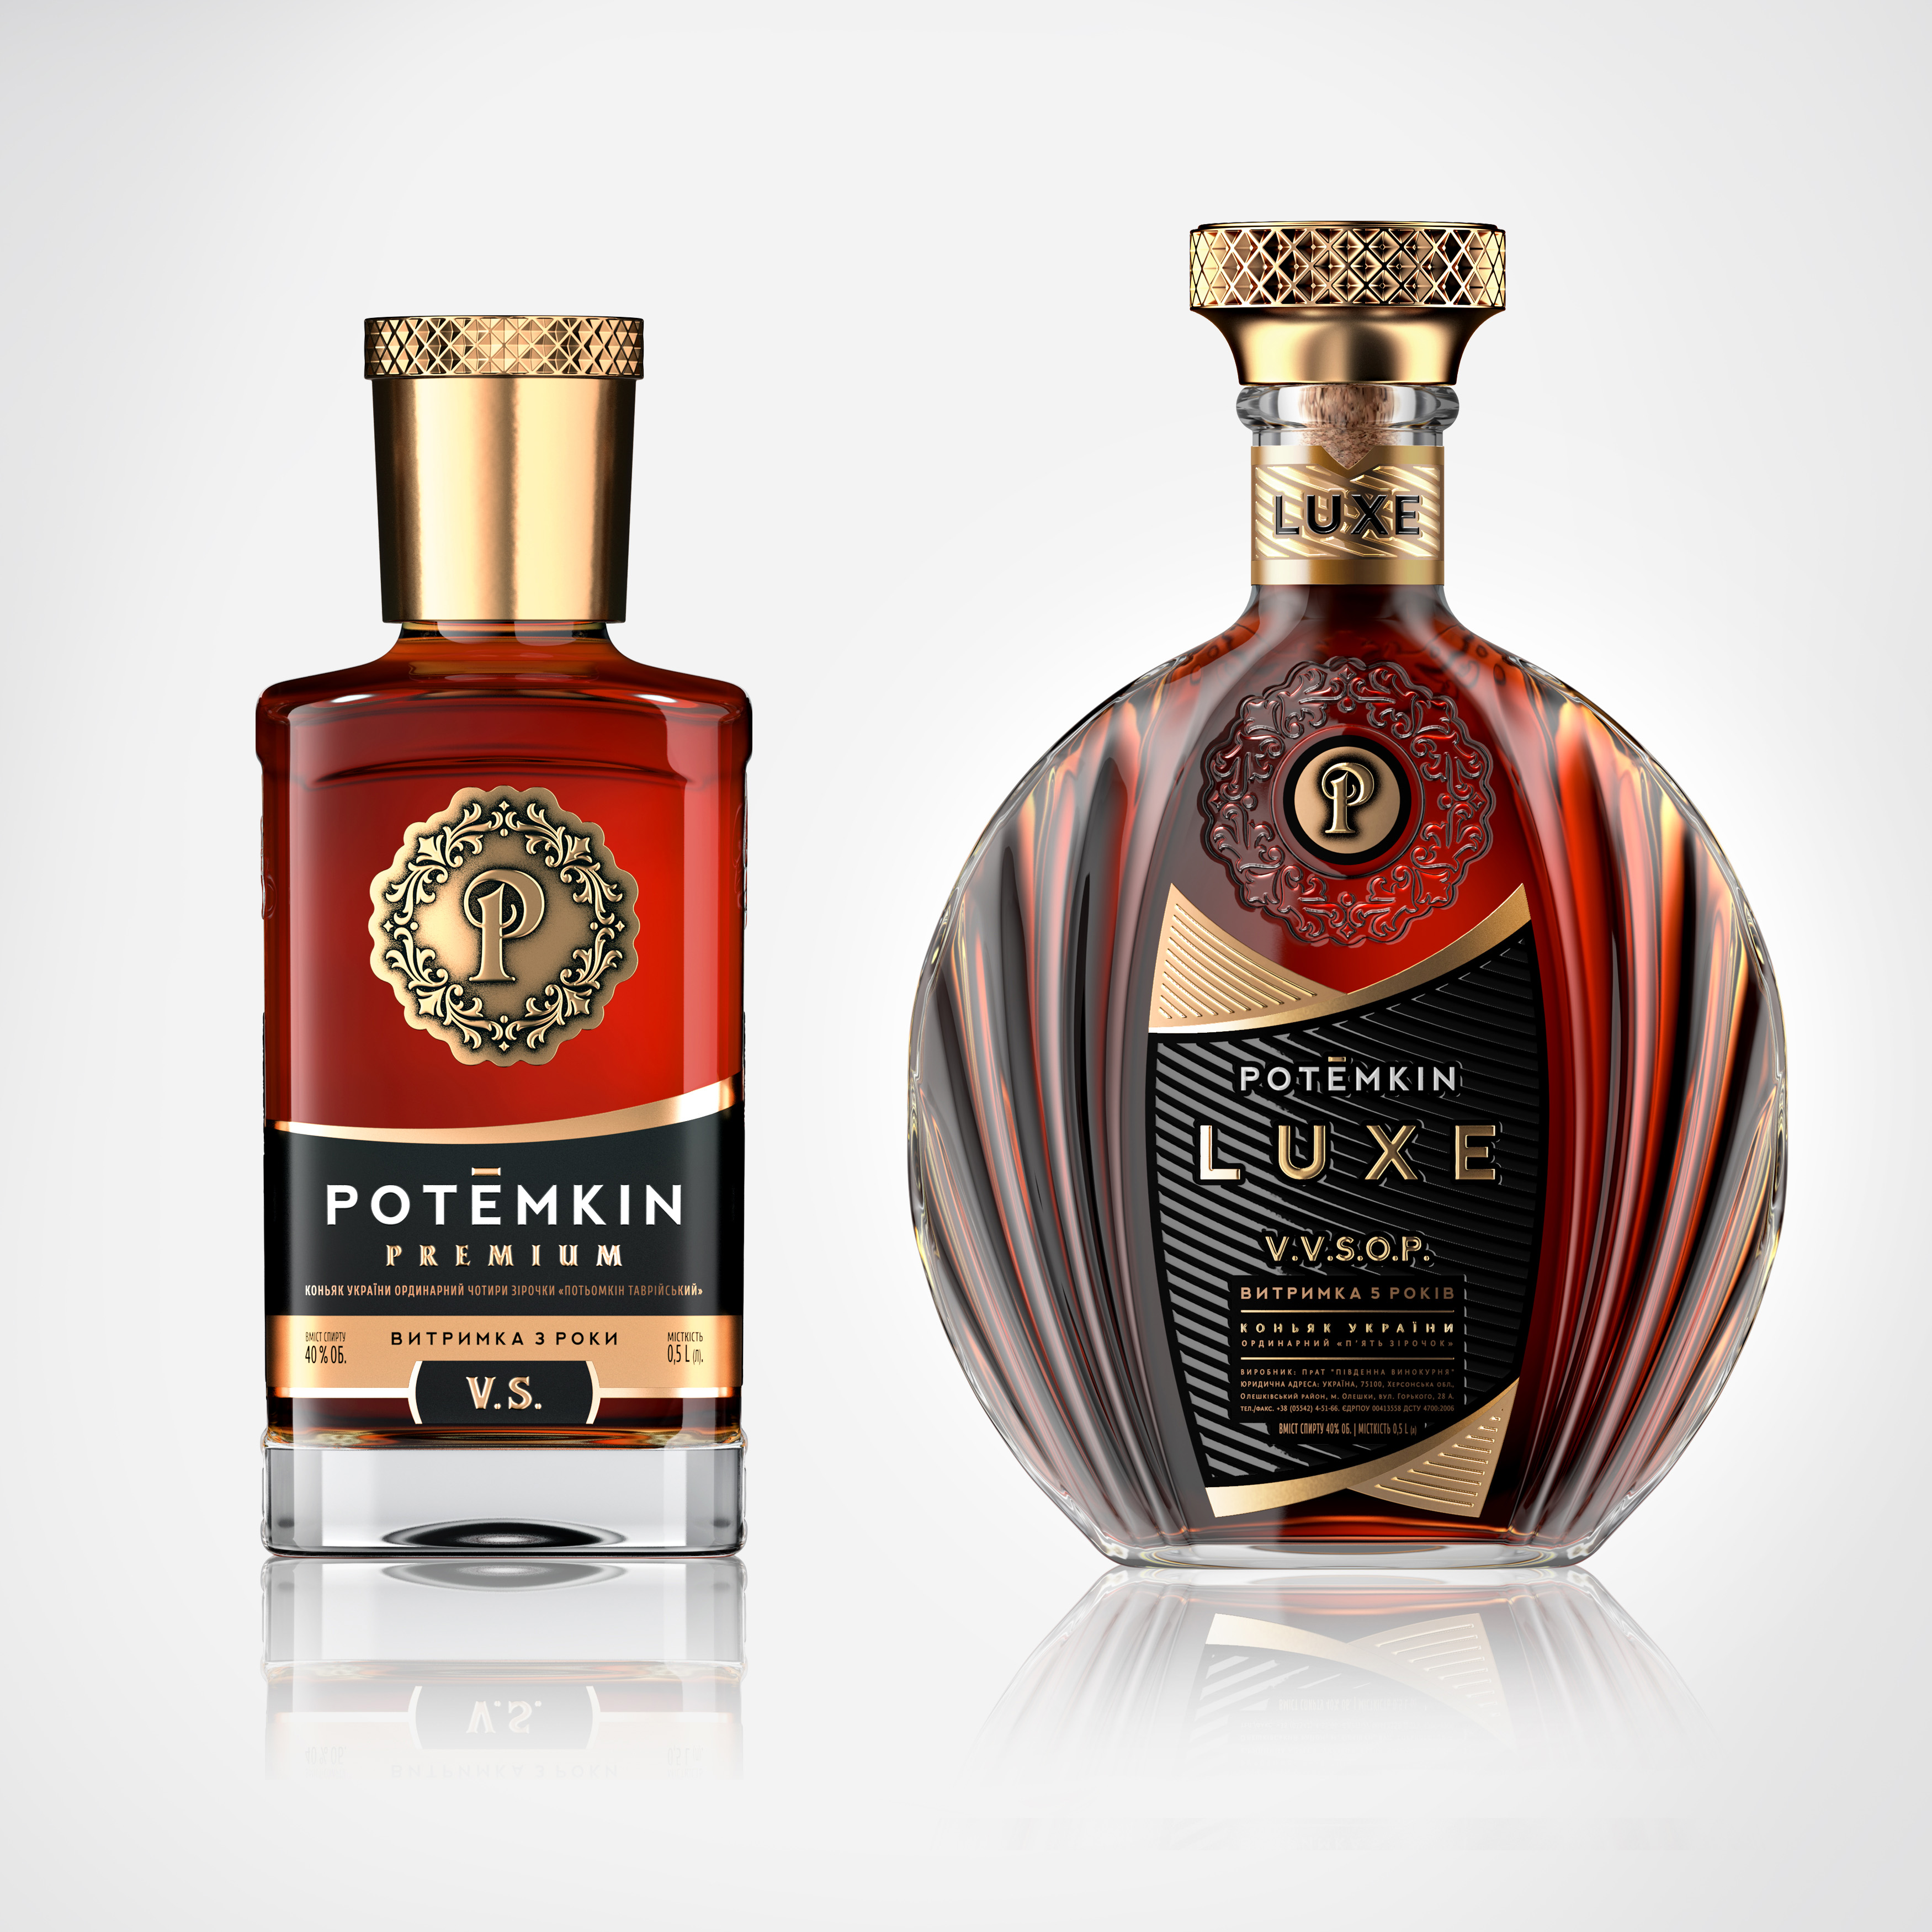 A comprehensive design of the POTEMKIN LUXE brandy